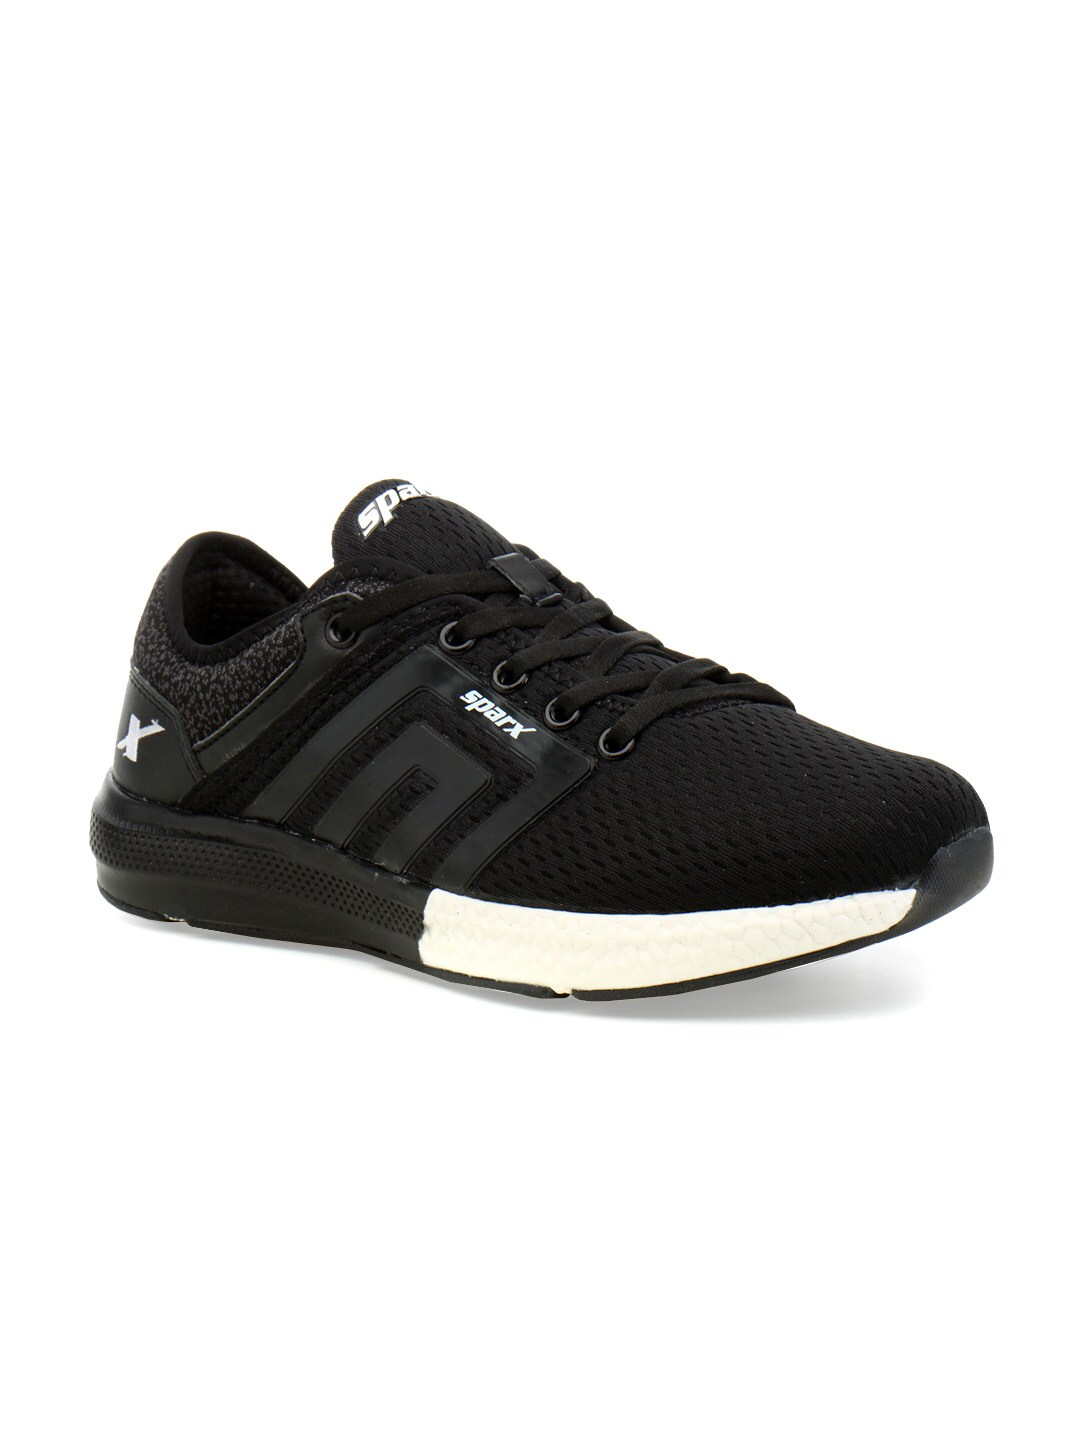 f8bfd3552 Sparx Shoes - Buy Sparx Shoes for Men Online in India